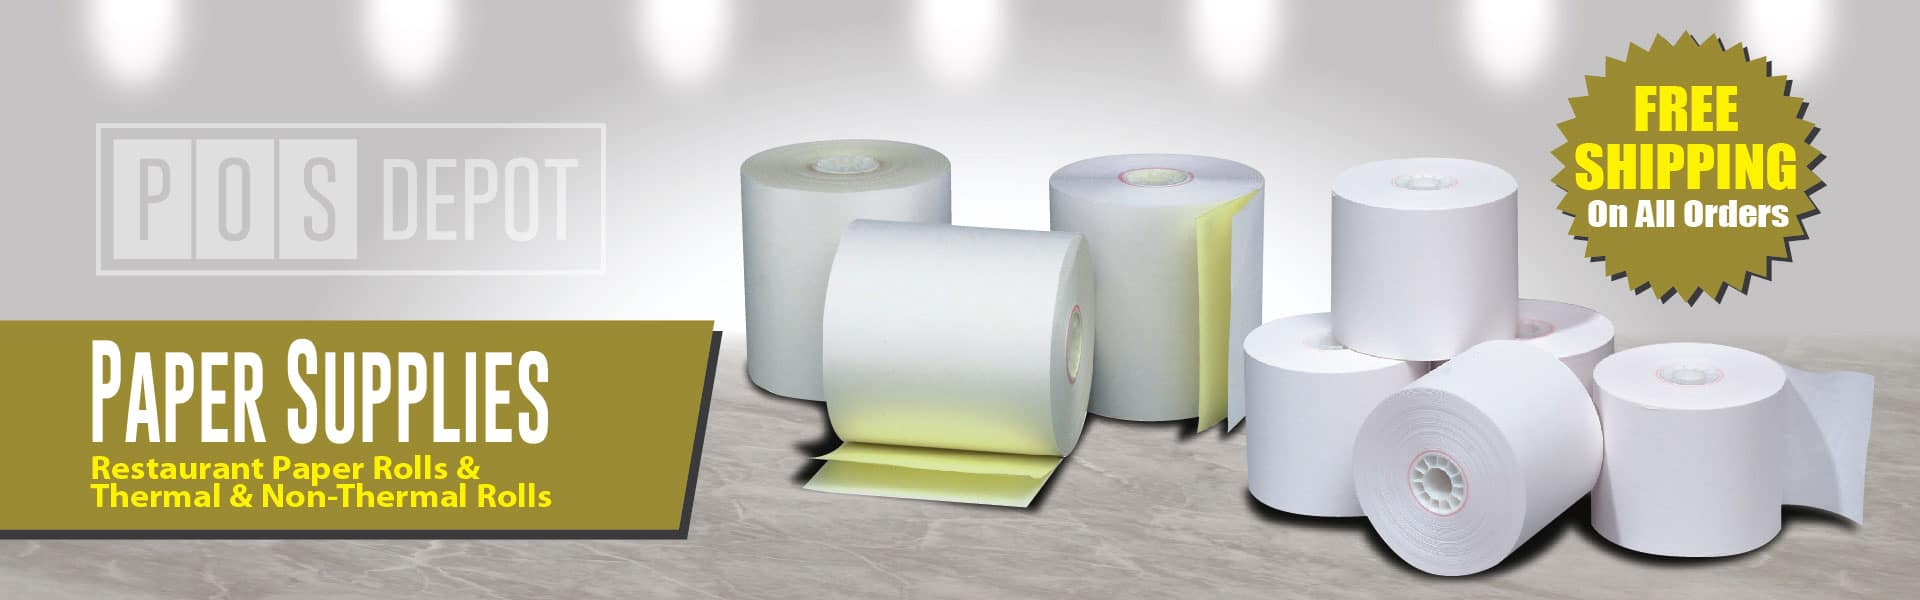 POS-Depot.com™ Point of Sale Paper Rolls